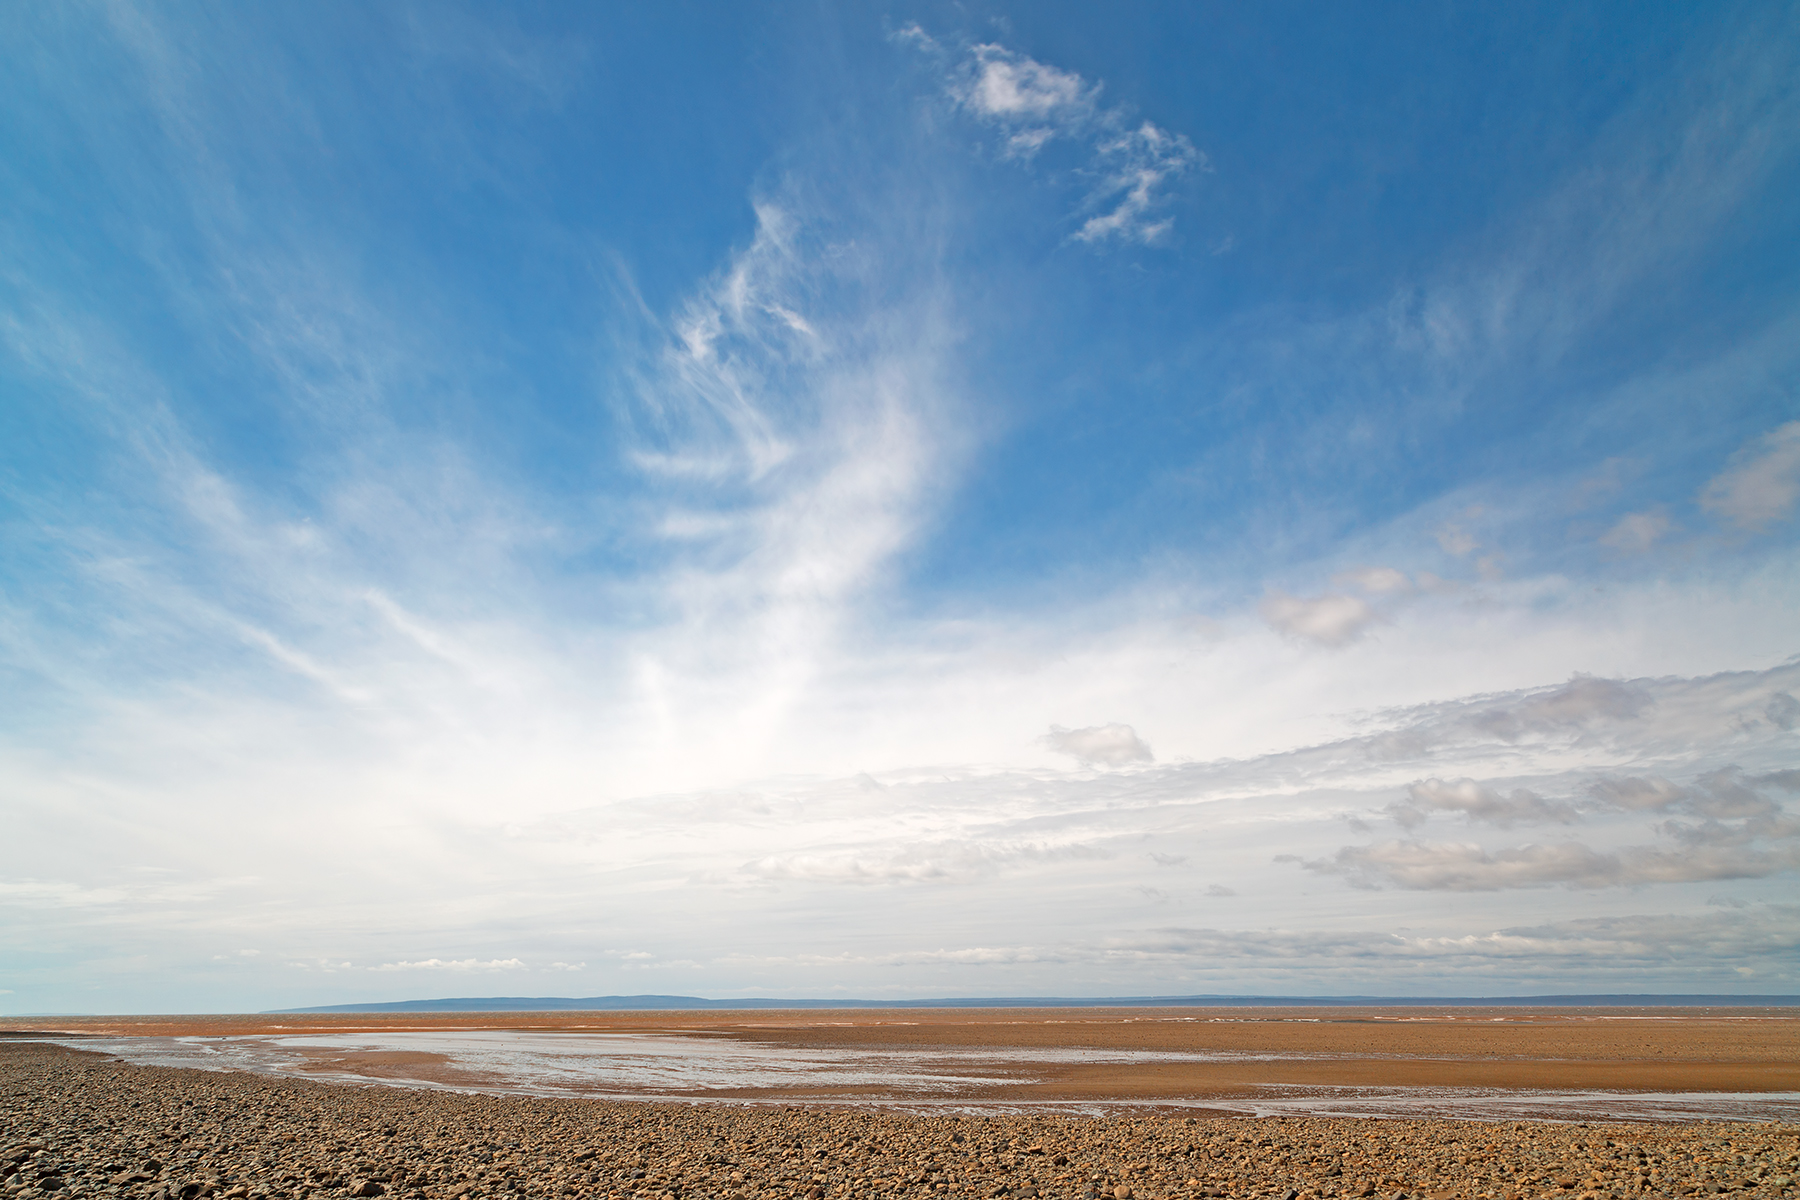 Pegasus Cloud Beach, Abstract, Park, Scenic, Scenery, HQ Photo